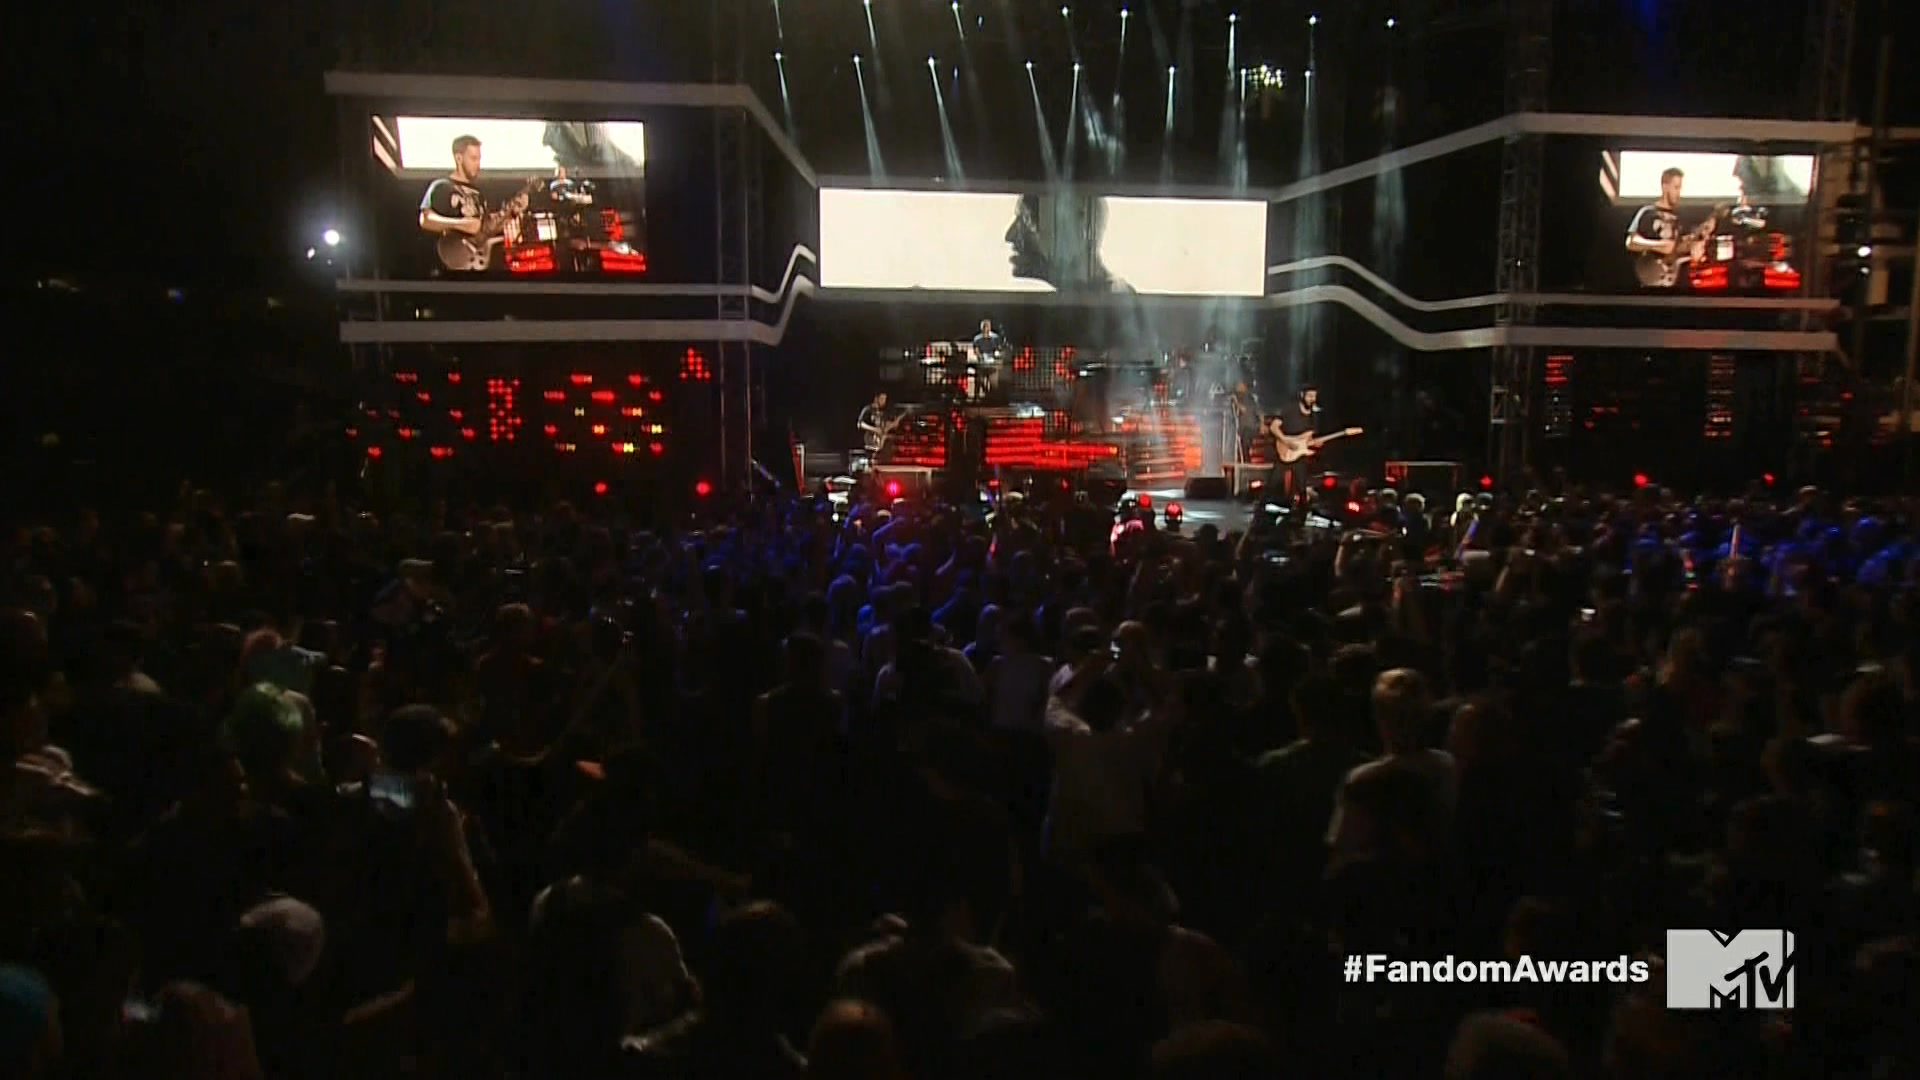 Linkin Park 2014-07-24 mtvU Fandom Awards @ Comic-Con, Petco Park, San Diego, CA, USA (HD 1080)